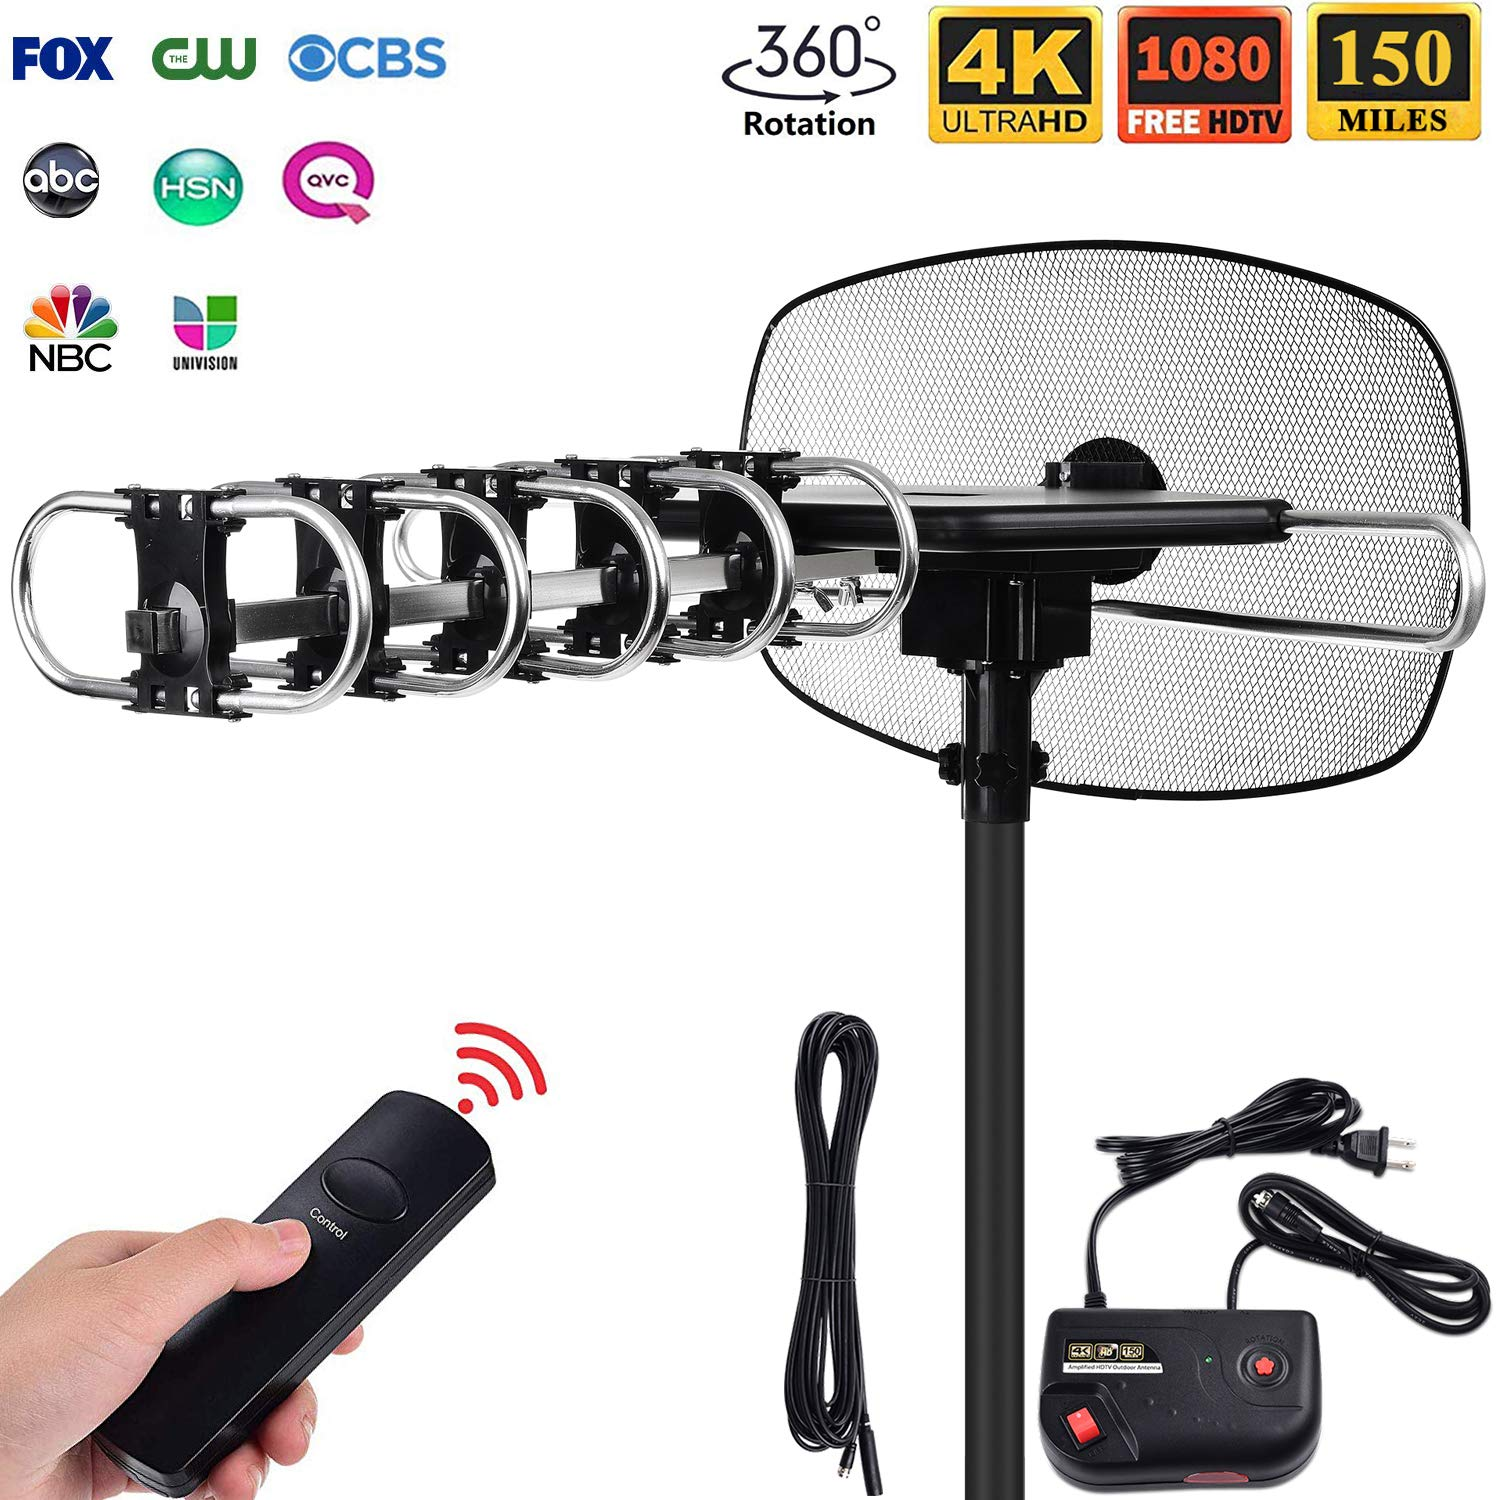 OnLyee Outdoor TV Antenna - Amplified Digital TV Antenna 150 Mile Motorized 360 Degree Rotation for 2 TVs Support - UHF/VHF/4K/1080P Channels Receiver with Wireless Remote Control - 40ft Coax Cable